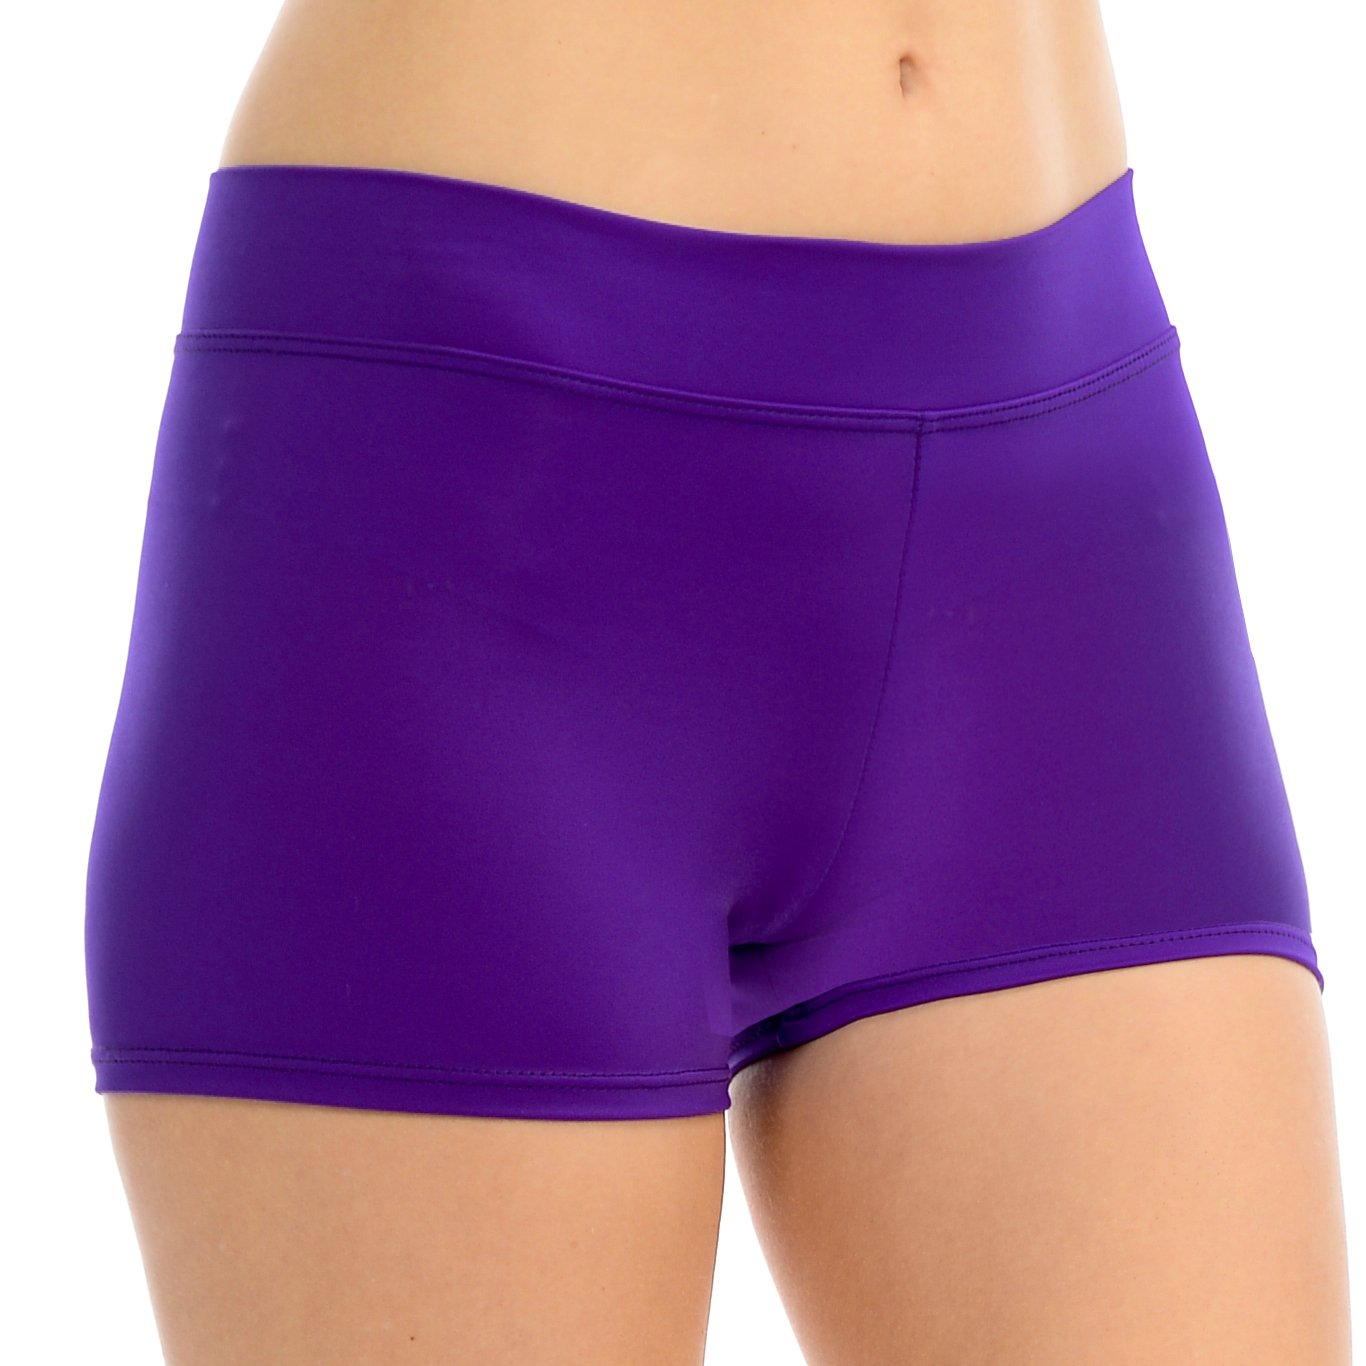 ANZA Girls Active Wear Dance Booty Shorts-Purple,Large(12/14) by Anza Collection